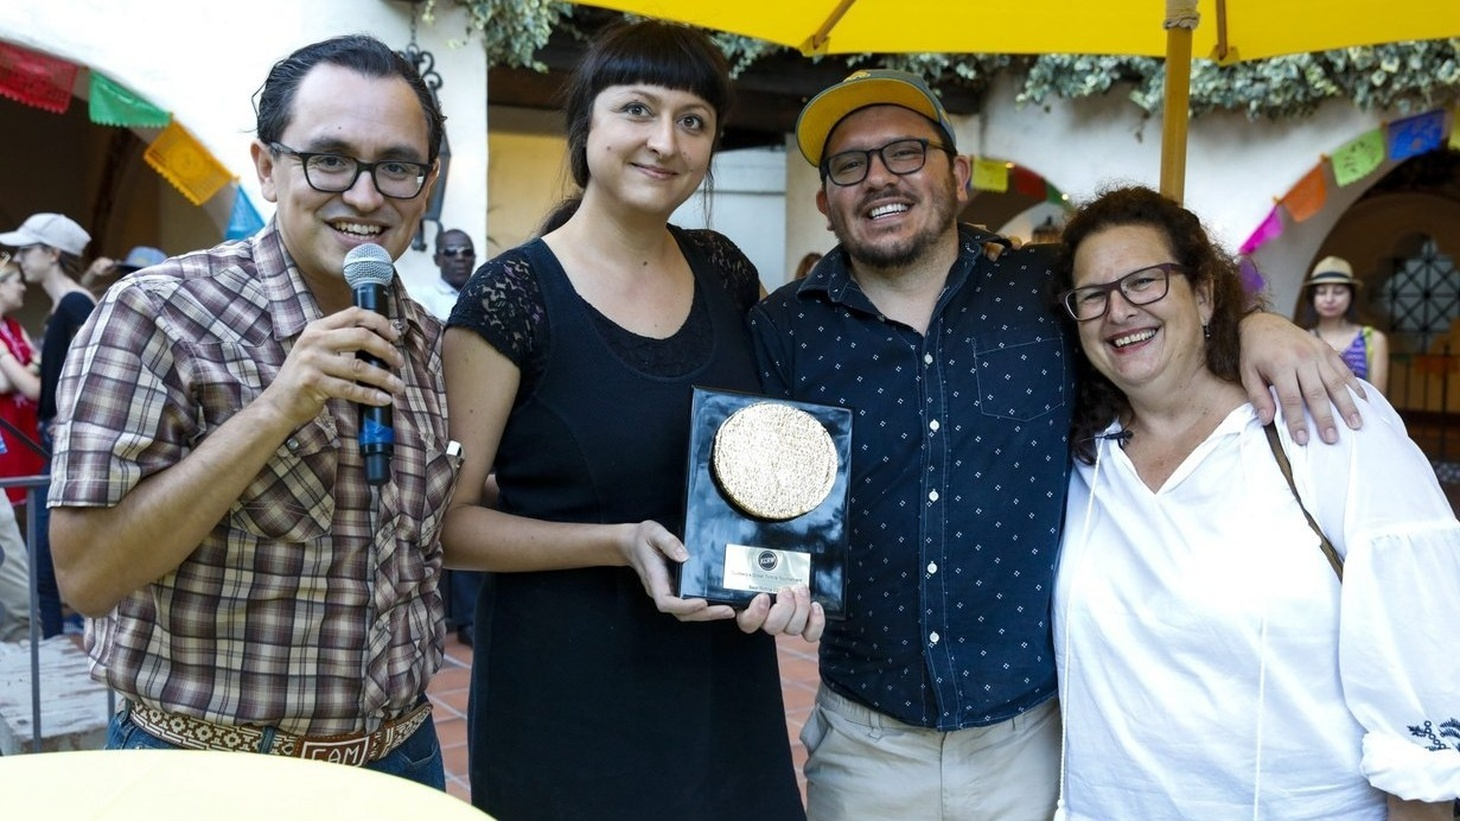 The battle between corn and flour has been narrowed down to 16 contenders, as Gustavo Arellano returns for the annual KCRW and Gustavo's Great Tortilla Tournament of Champions.